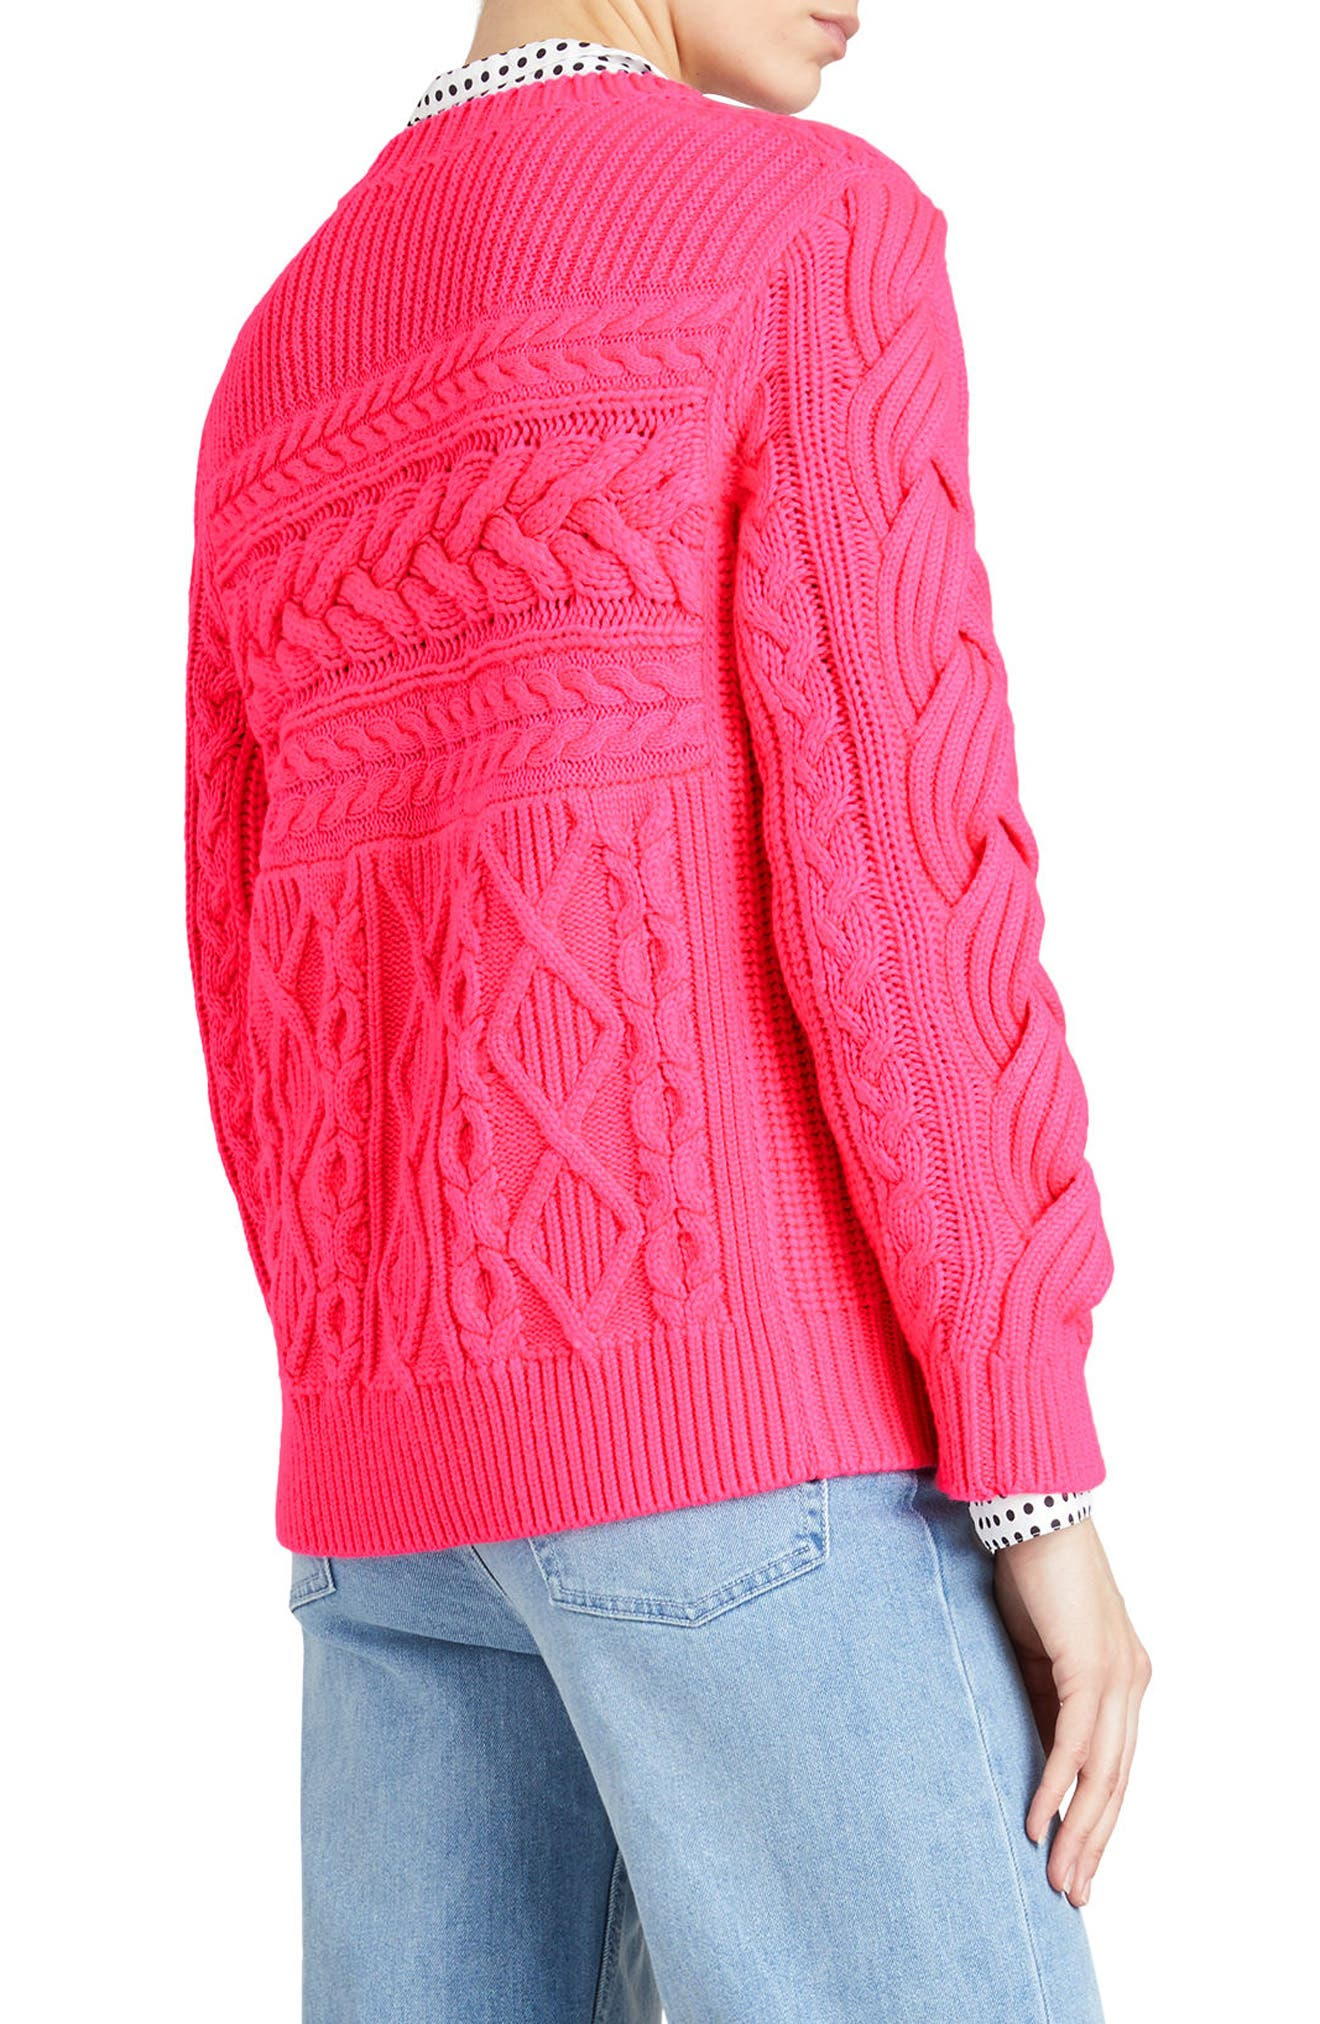 Tolman Aran Knit Sweater,                             Alternate thumbnail 3, color,